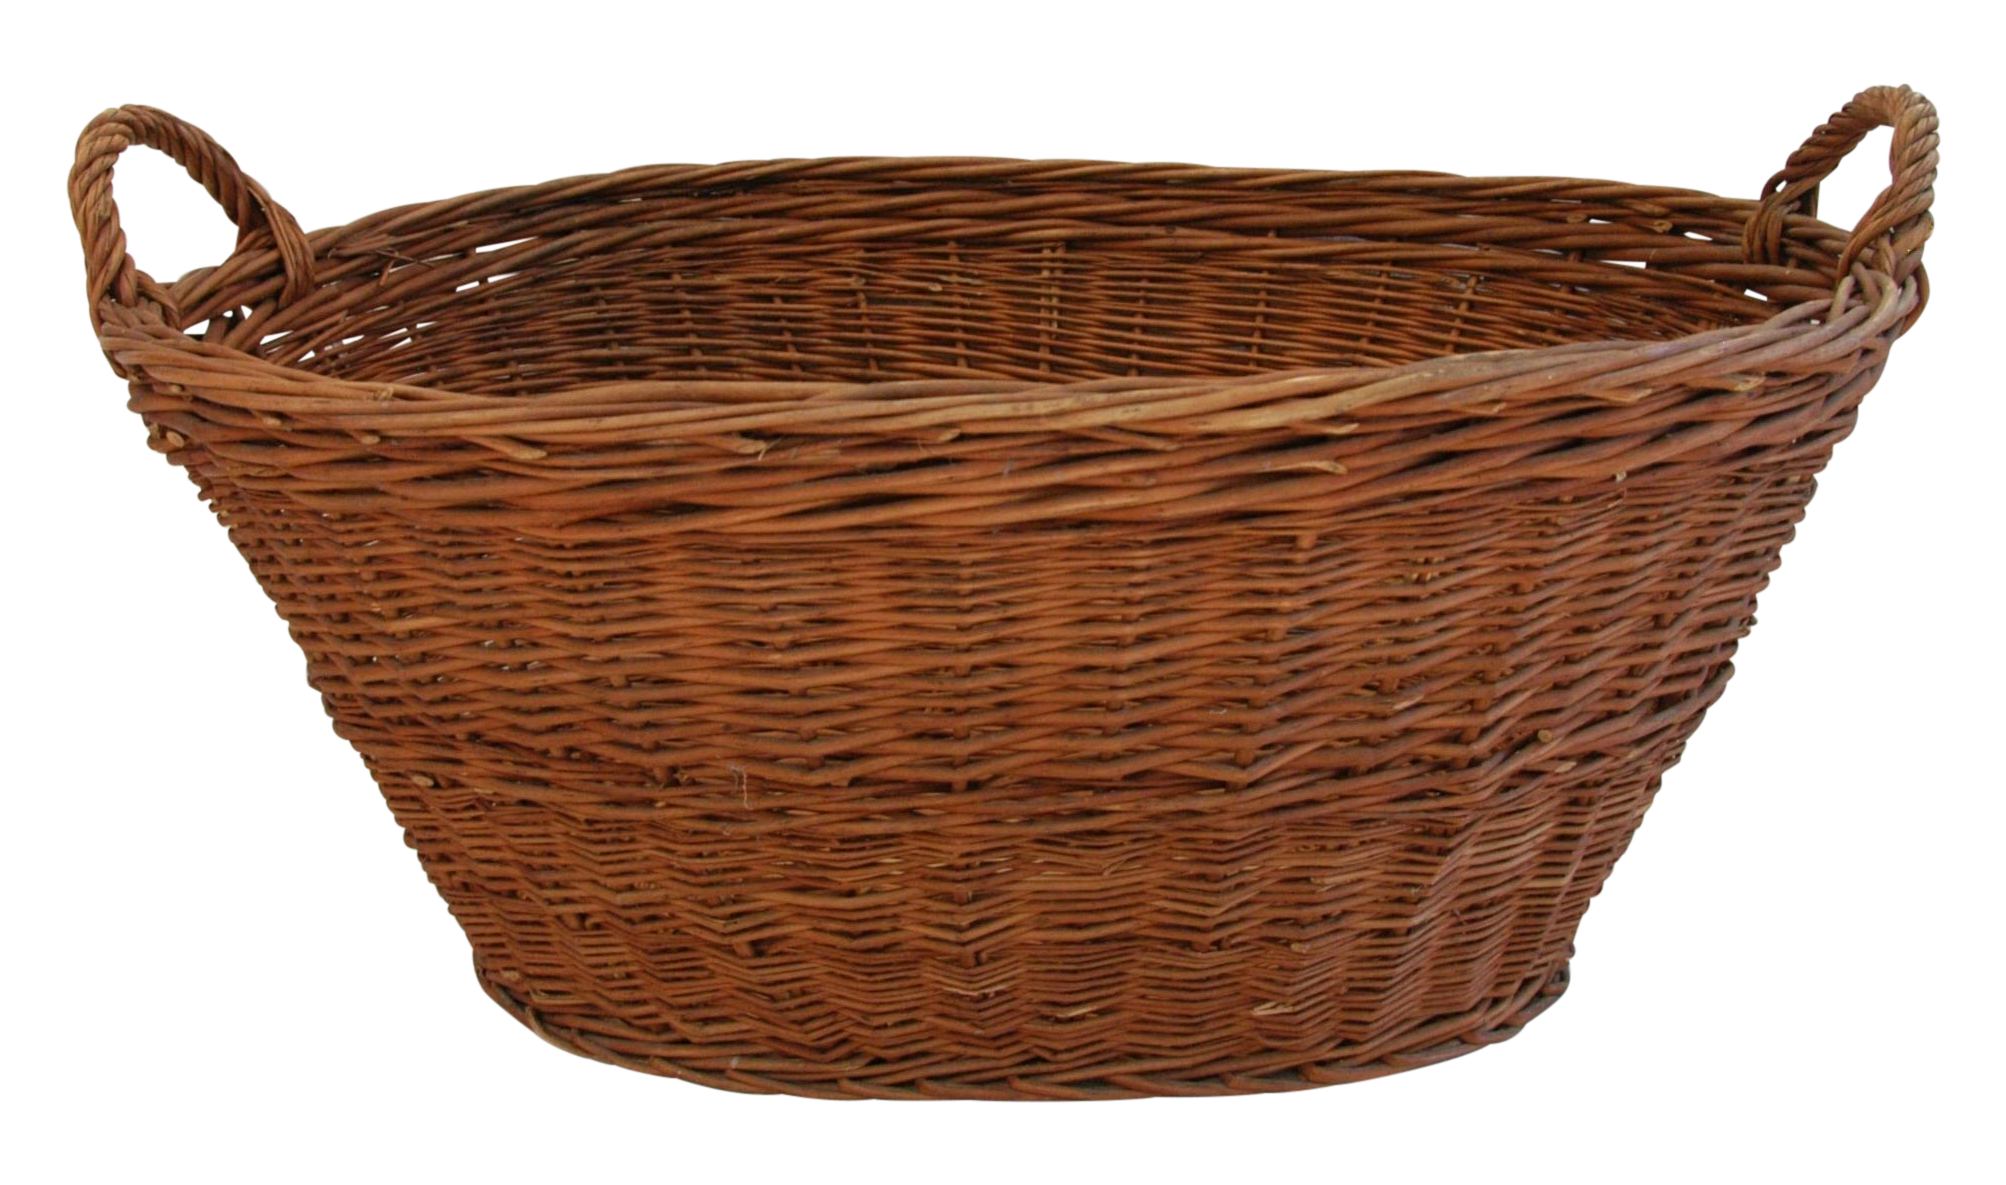 Wicker Basket PNG-PlusPNG.com-2006 - Wicker Basket PNG